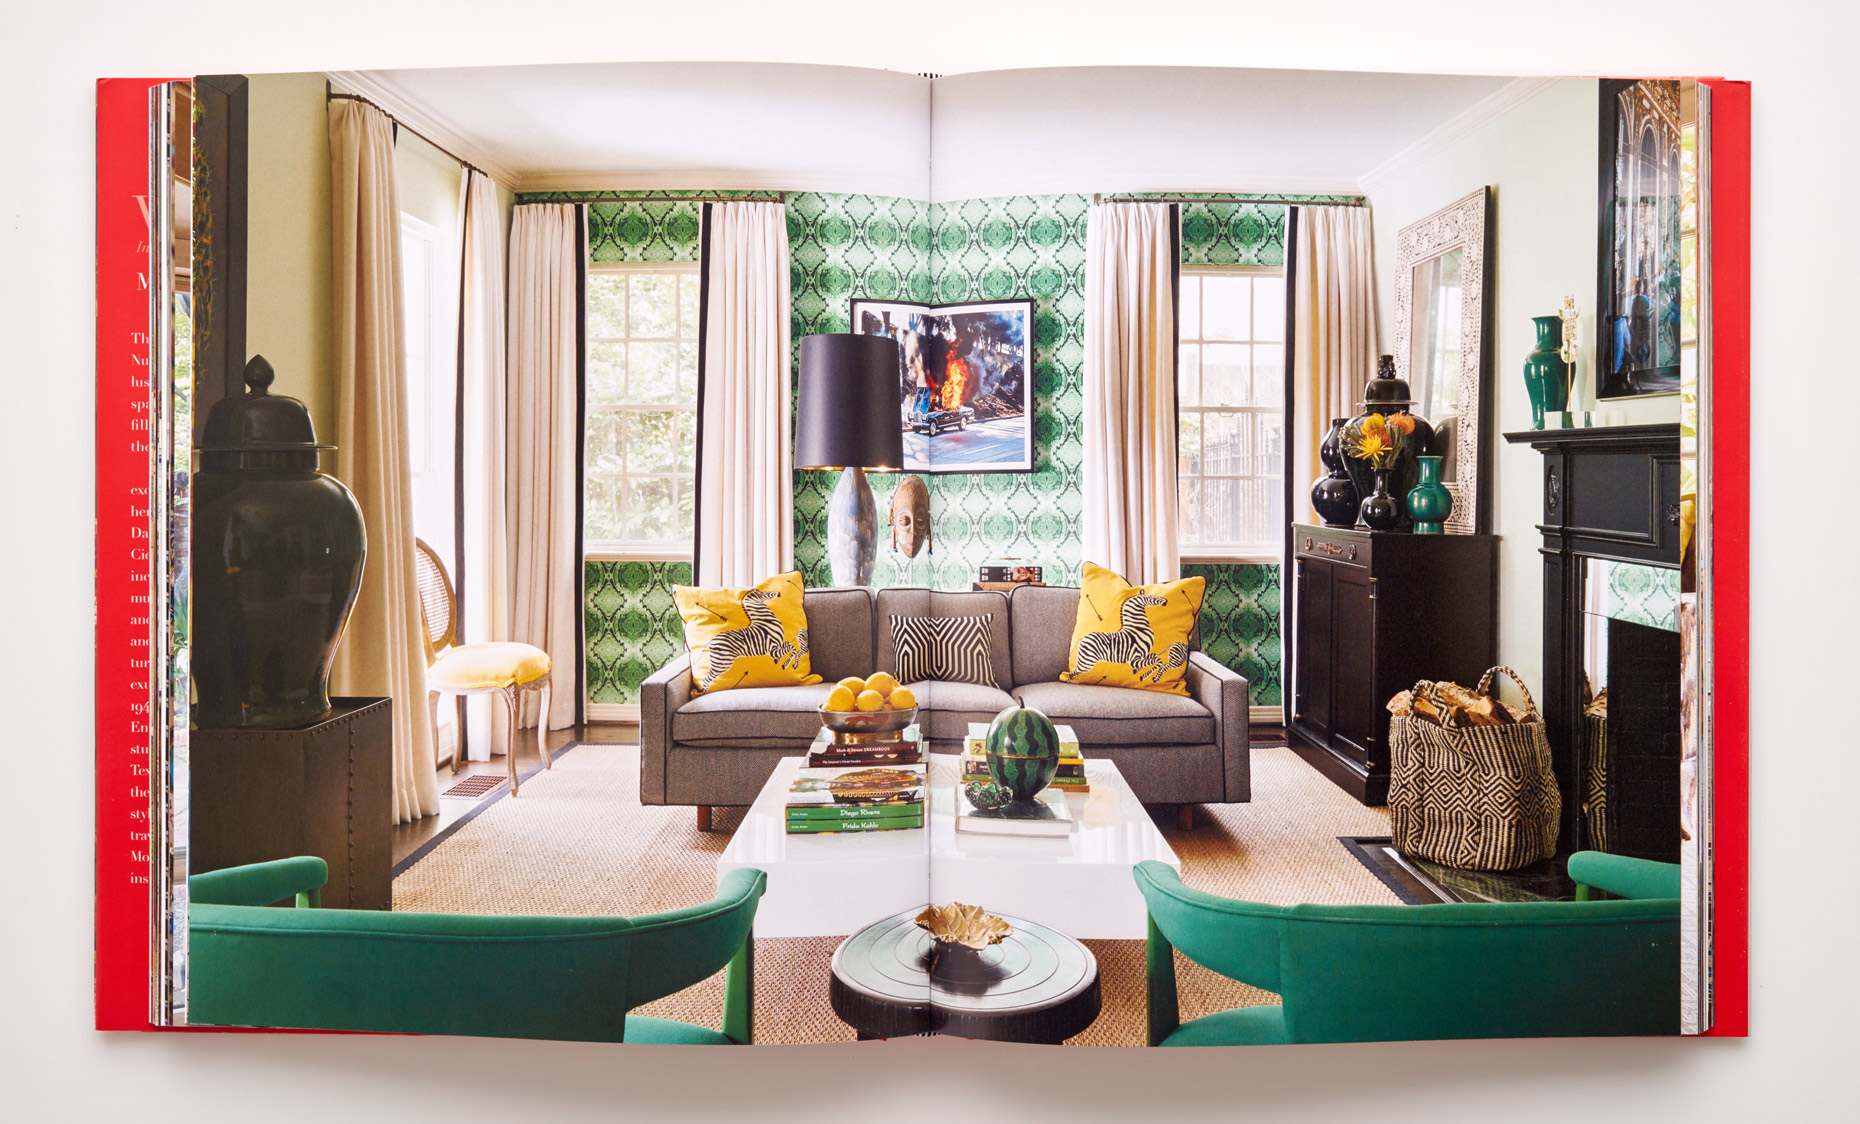 Stephen Karlisch Wanderlust Emerald Living Room